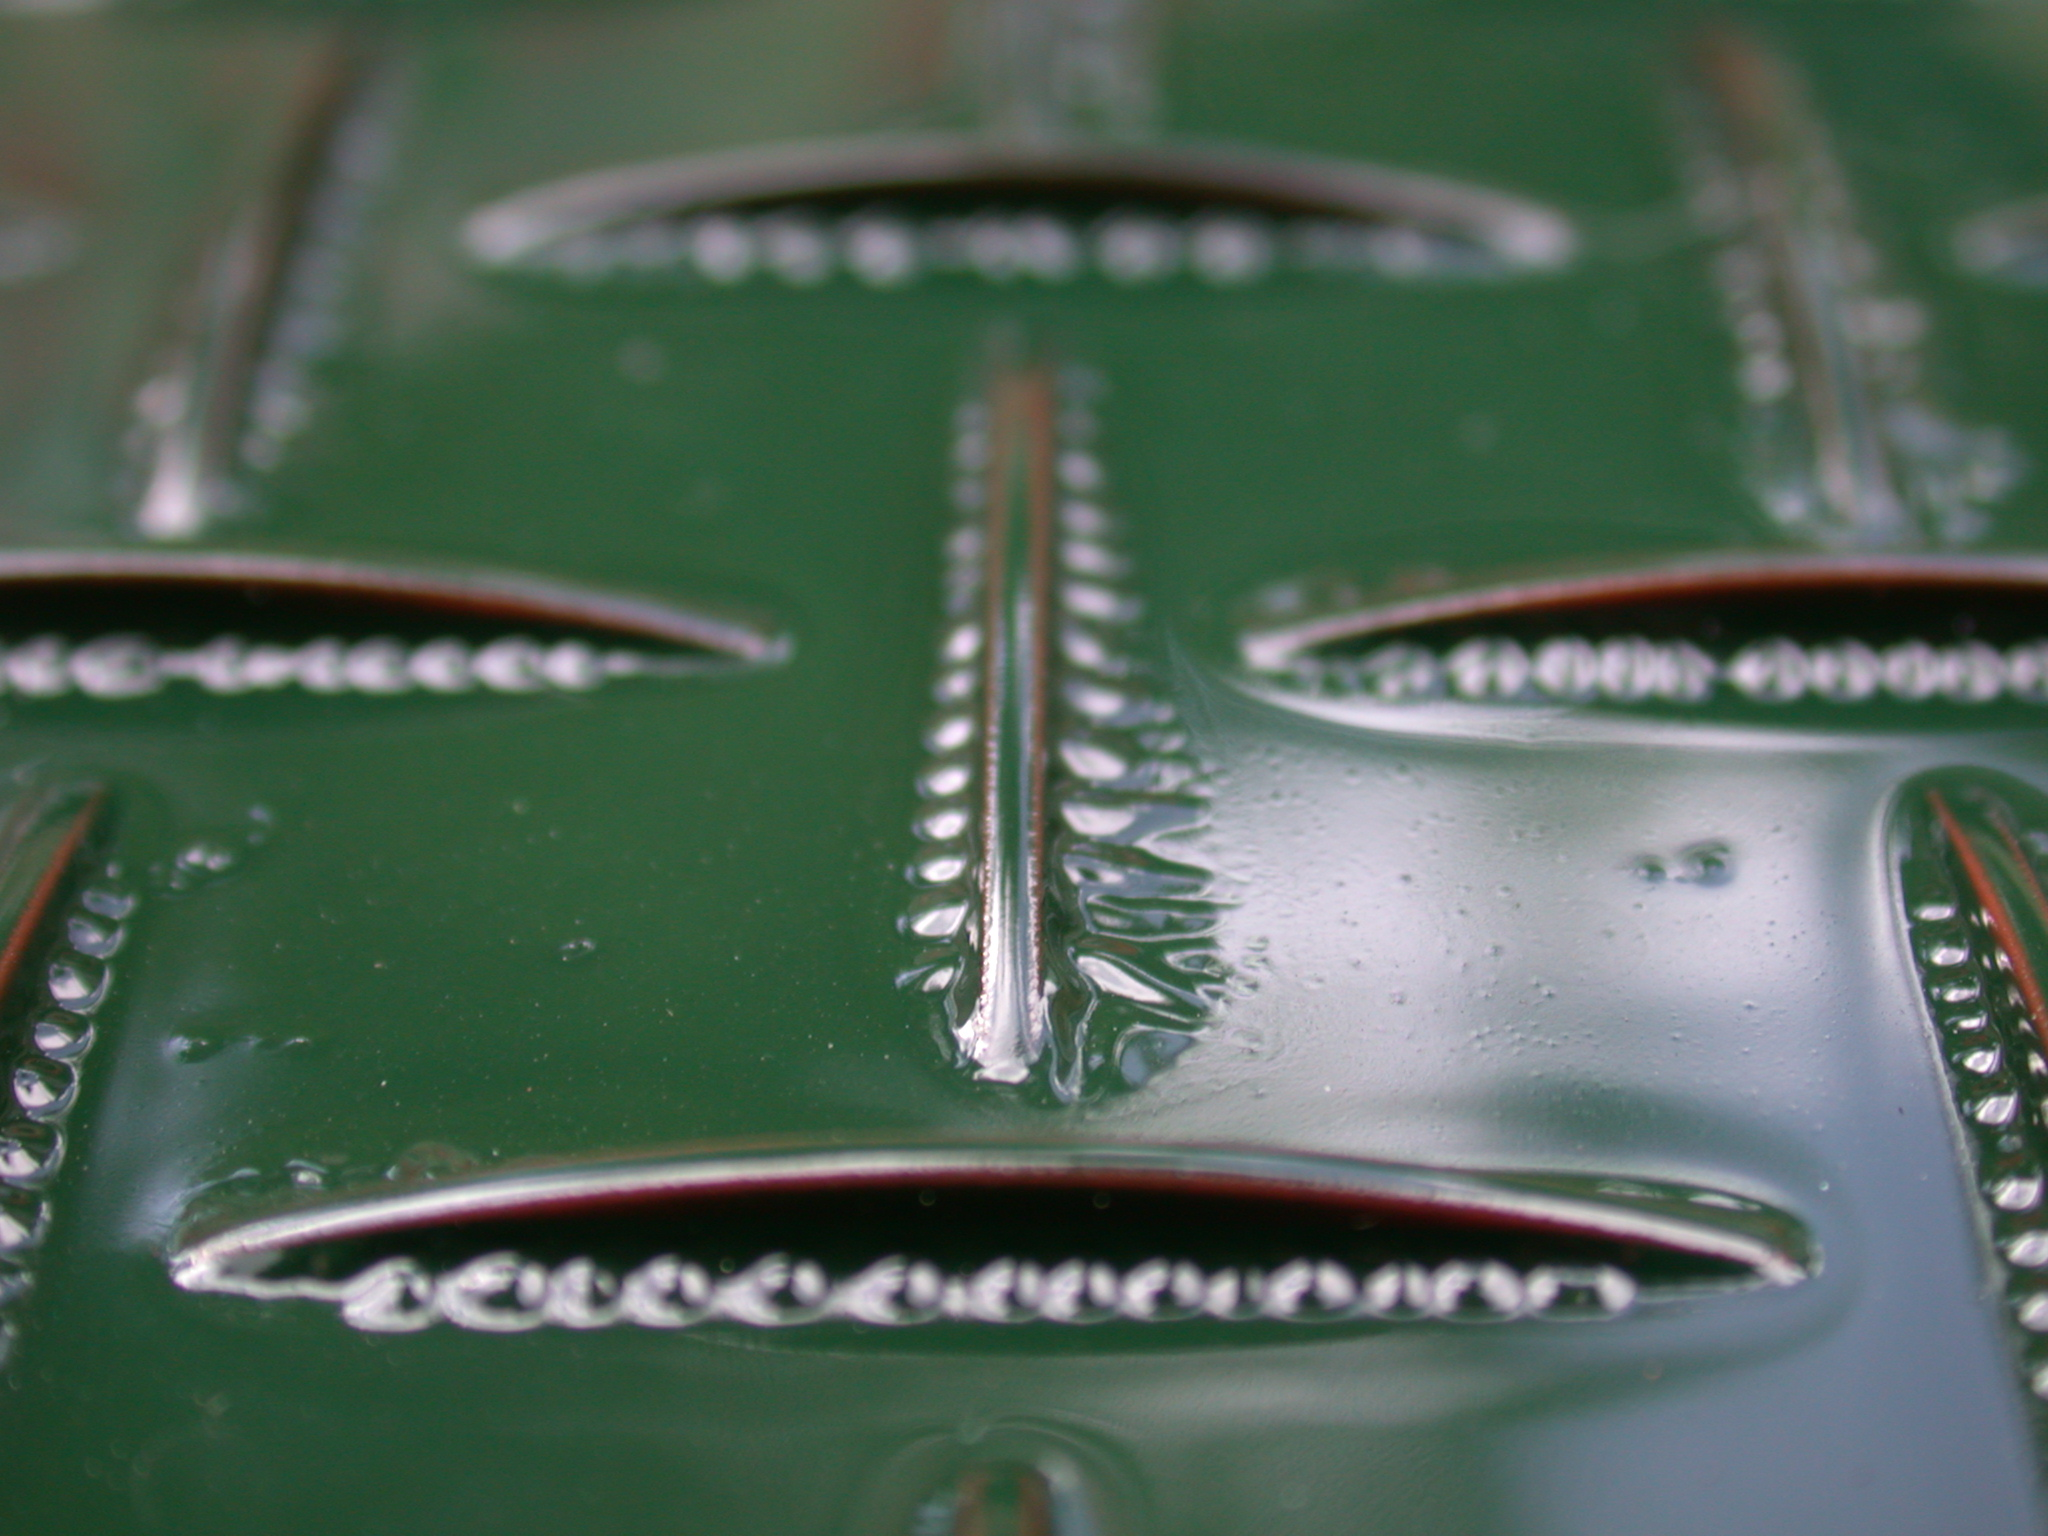 metal hole holes green ribbed royalty-free